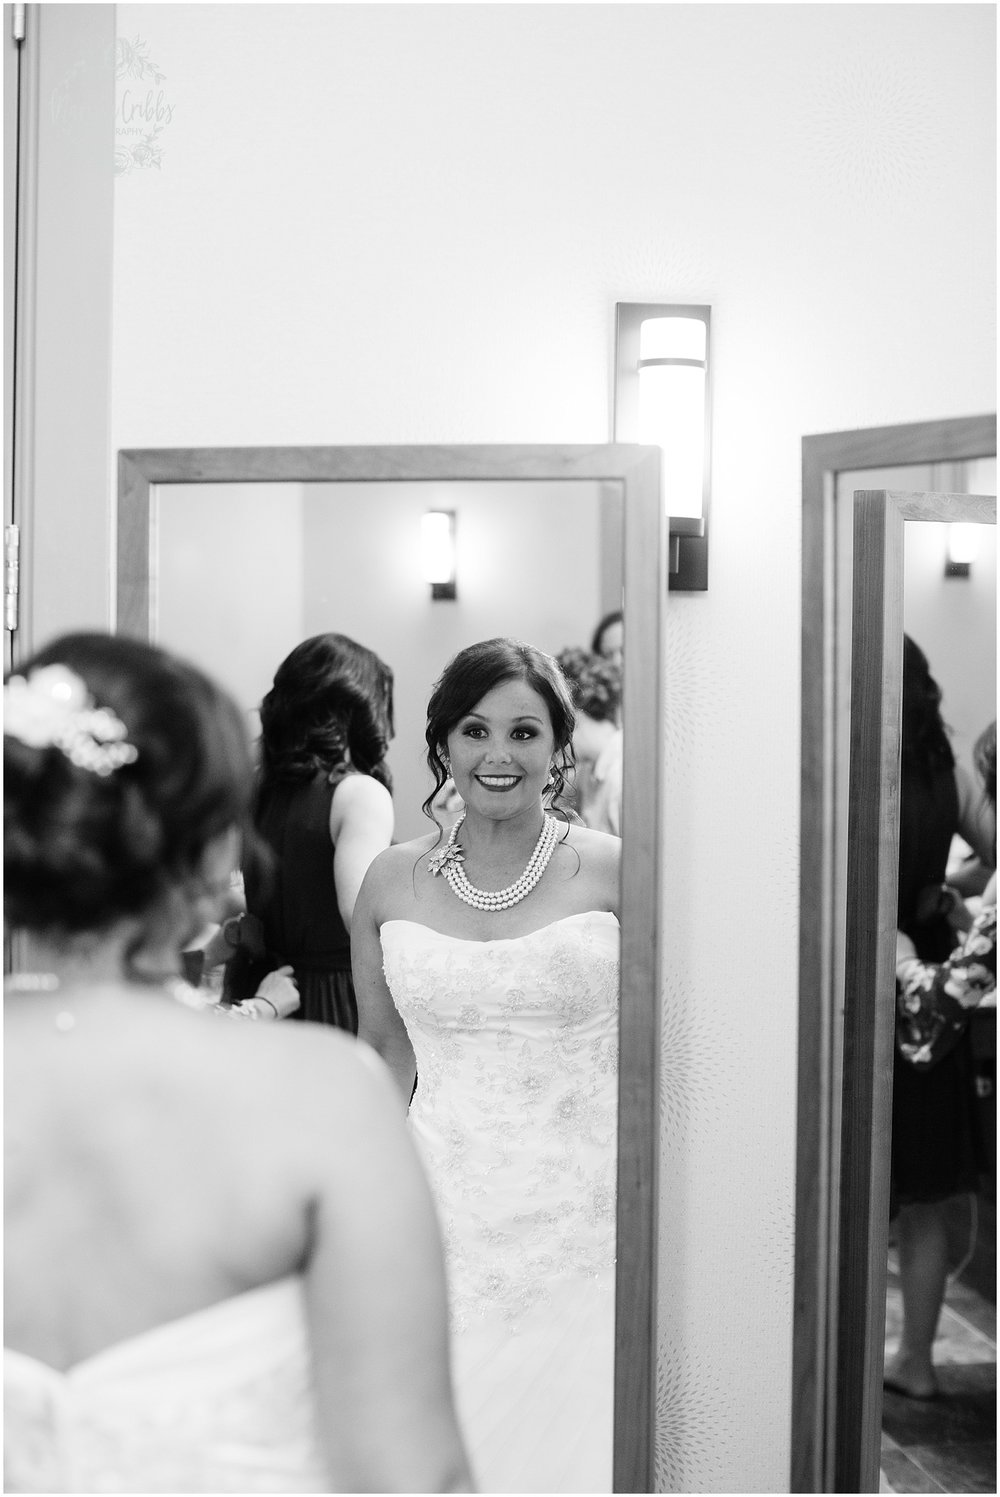 Sarah & Troy | Wichita KS Wedding Photography | Noah's Event Venue Wichita | Marissa Cribbs Photography_0987.jpg